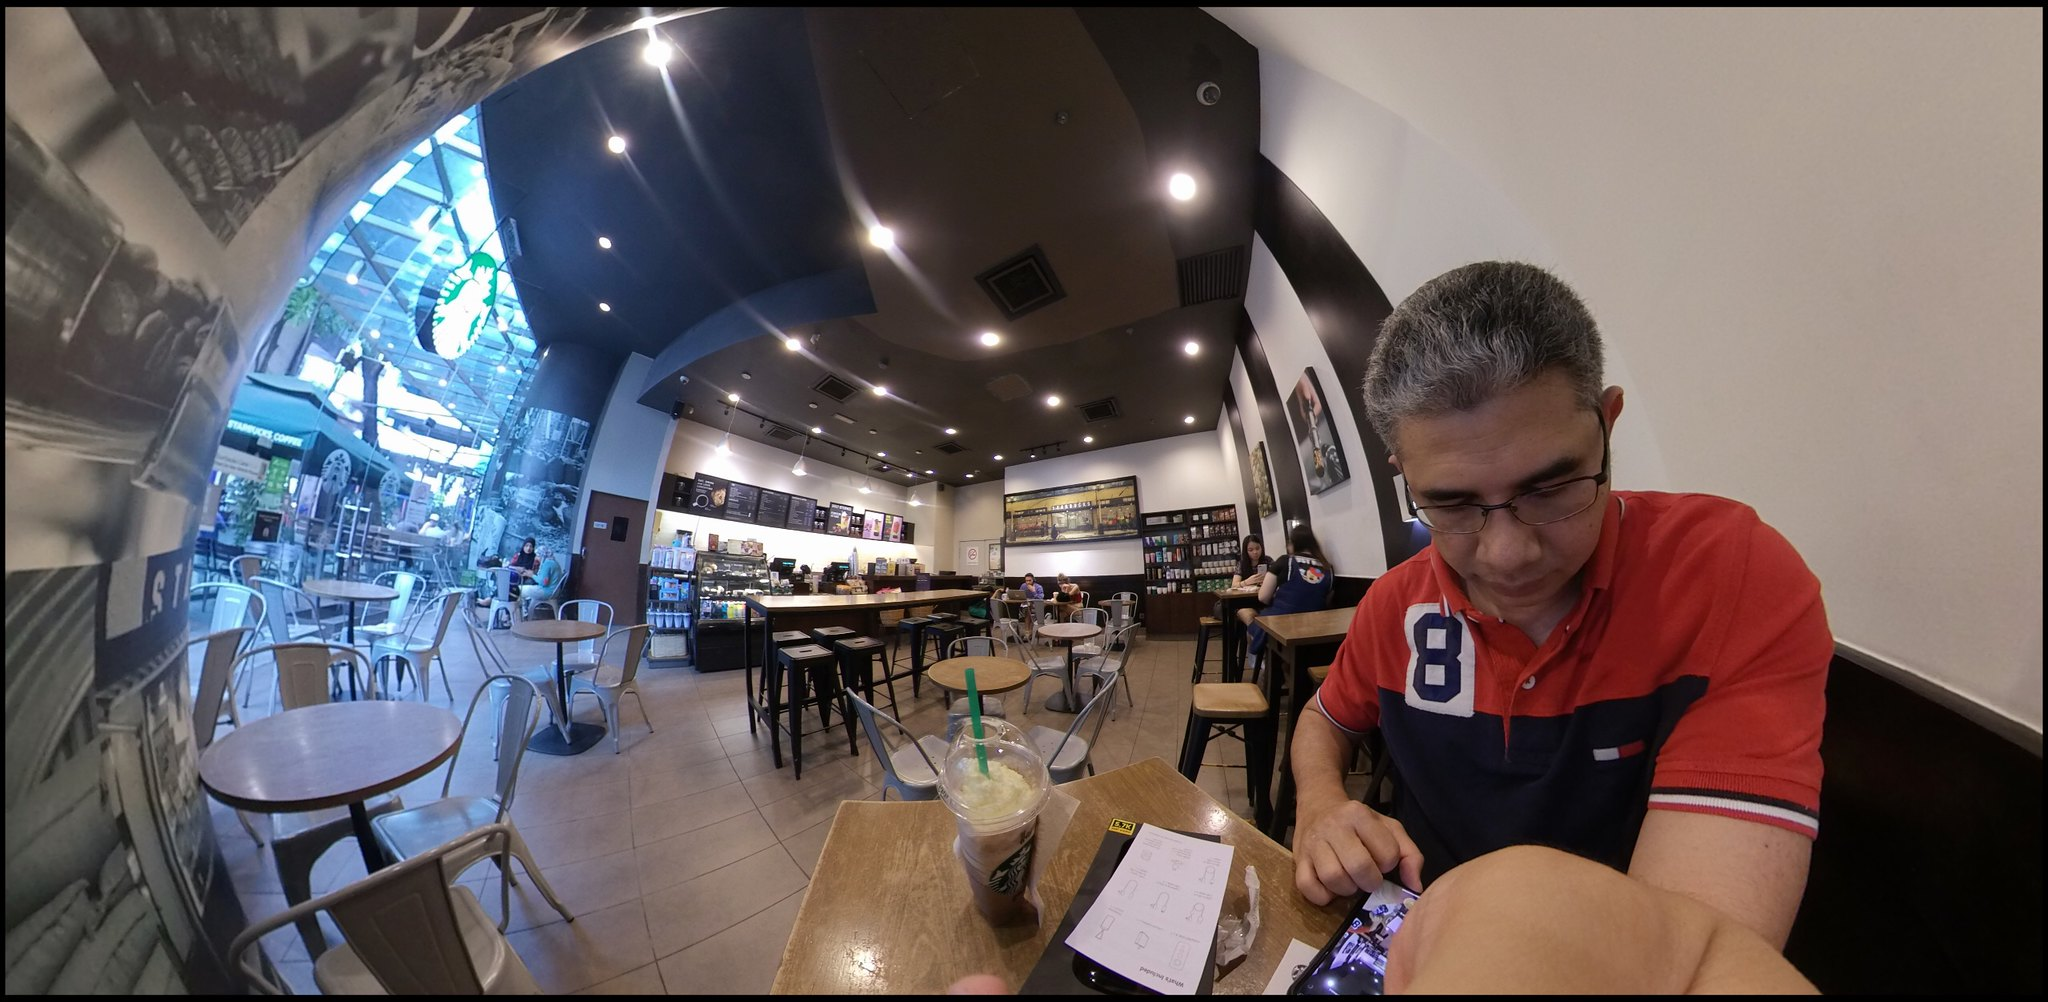 Trying out the new insta360